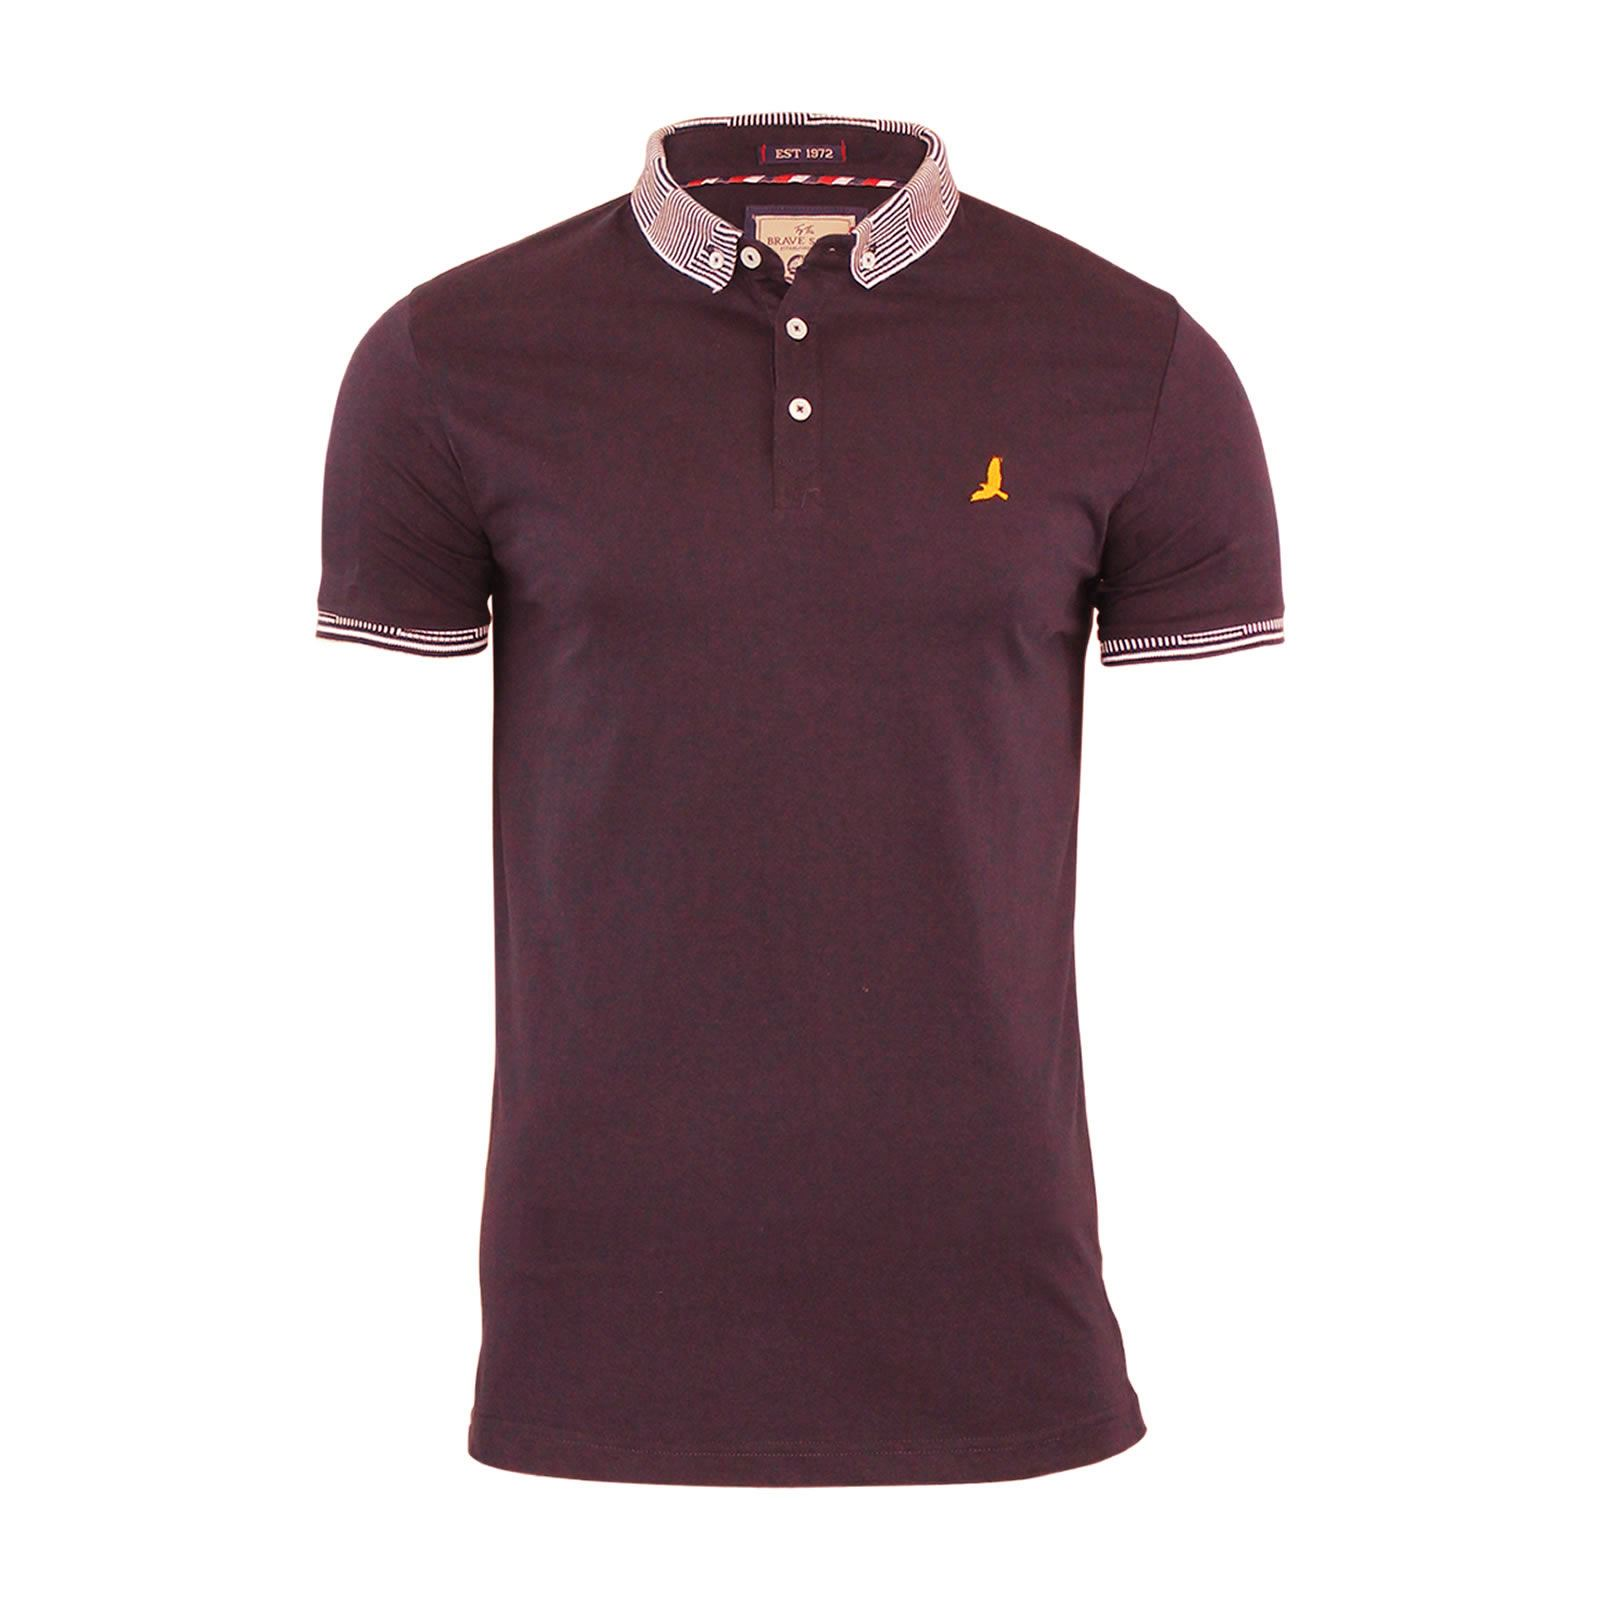 Brave-Soul-Glover-Mens-Polo-T-Shirt-Cotton-Collared-Short-Sleeve-Casual-Top thumbnail 38